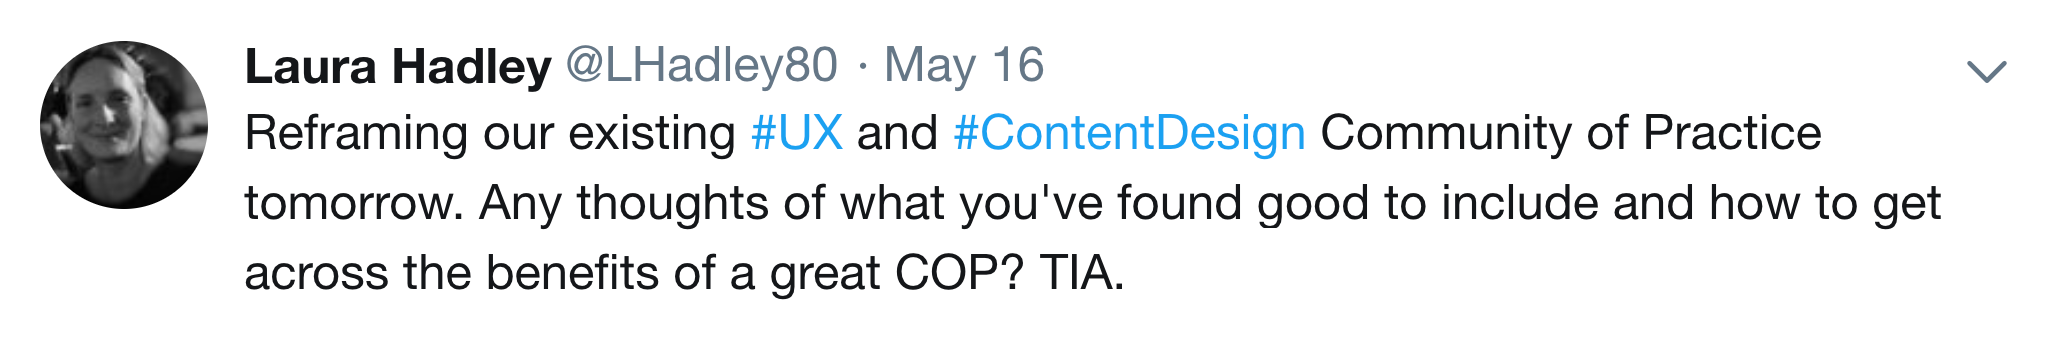 Reframing our existing #UX and #ContentDesign Community of Practice tomorrow. Any thoughts of what you've found good to include and how to get across the benefits of a great COP? TIA.